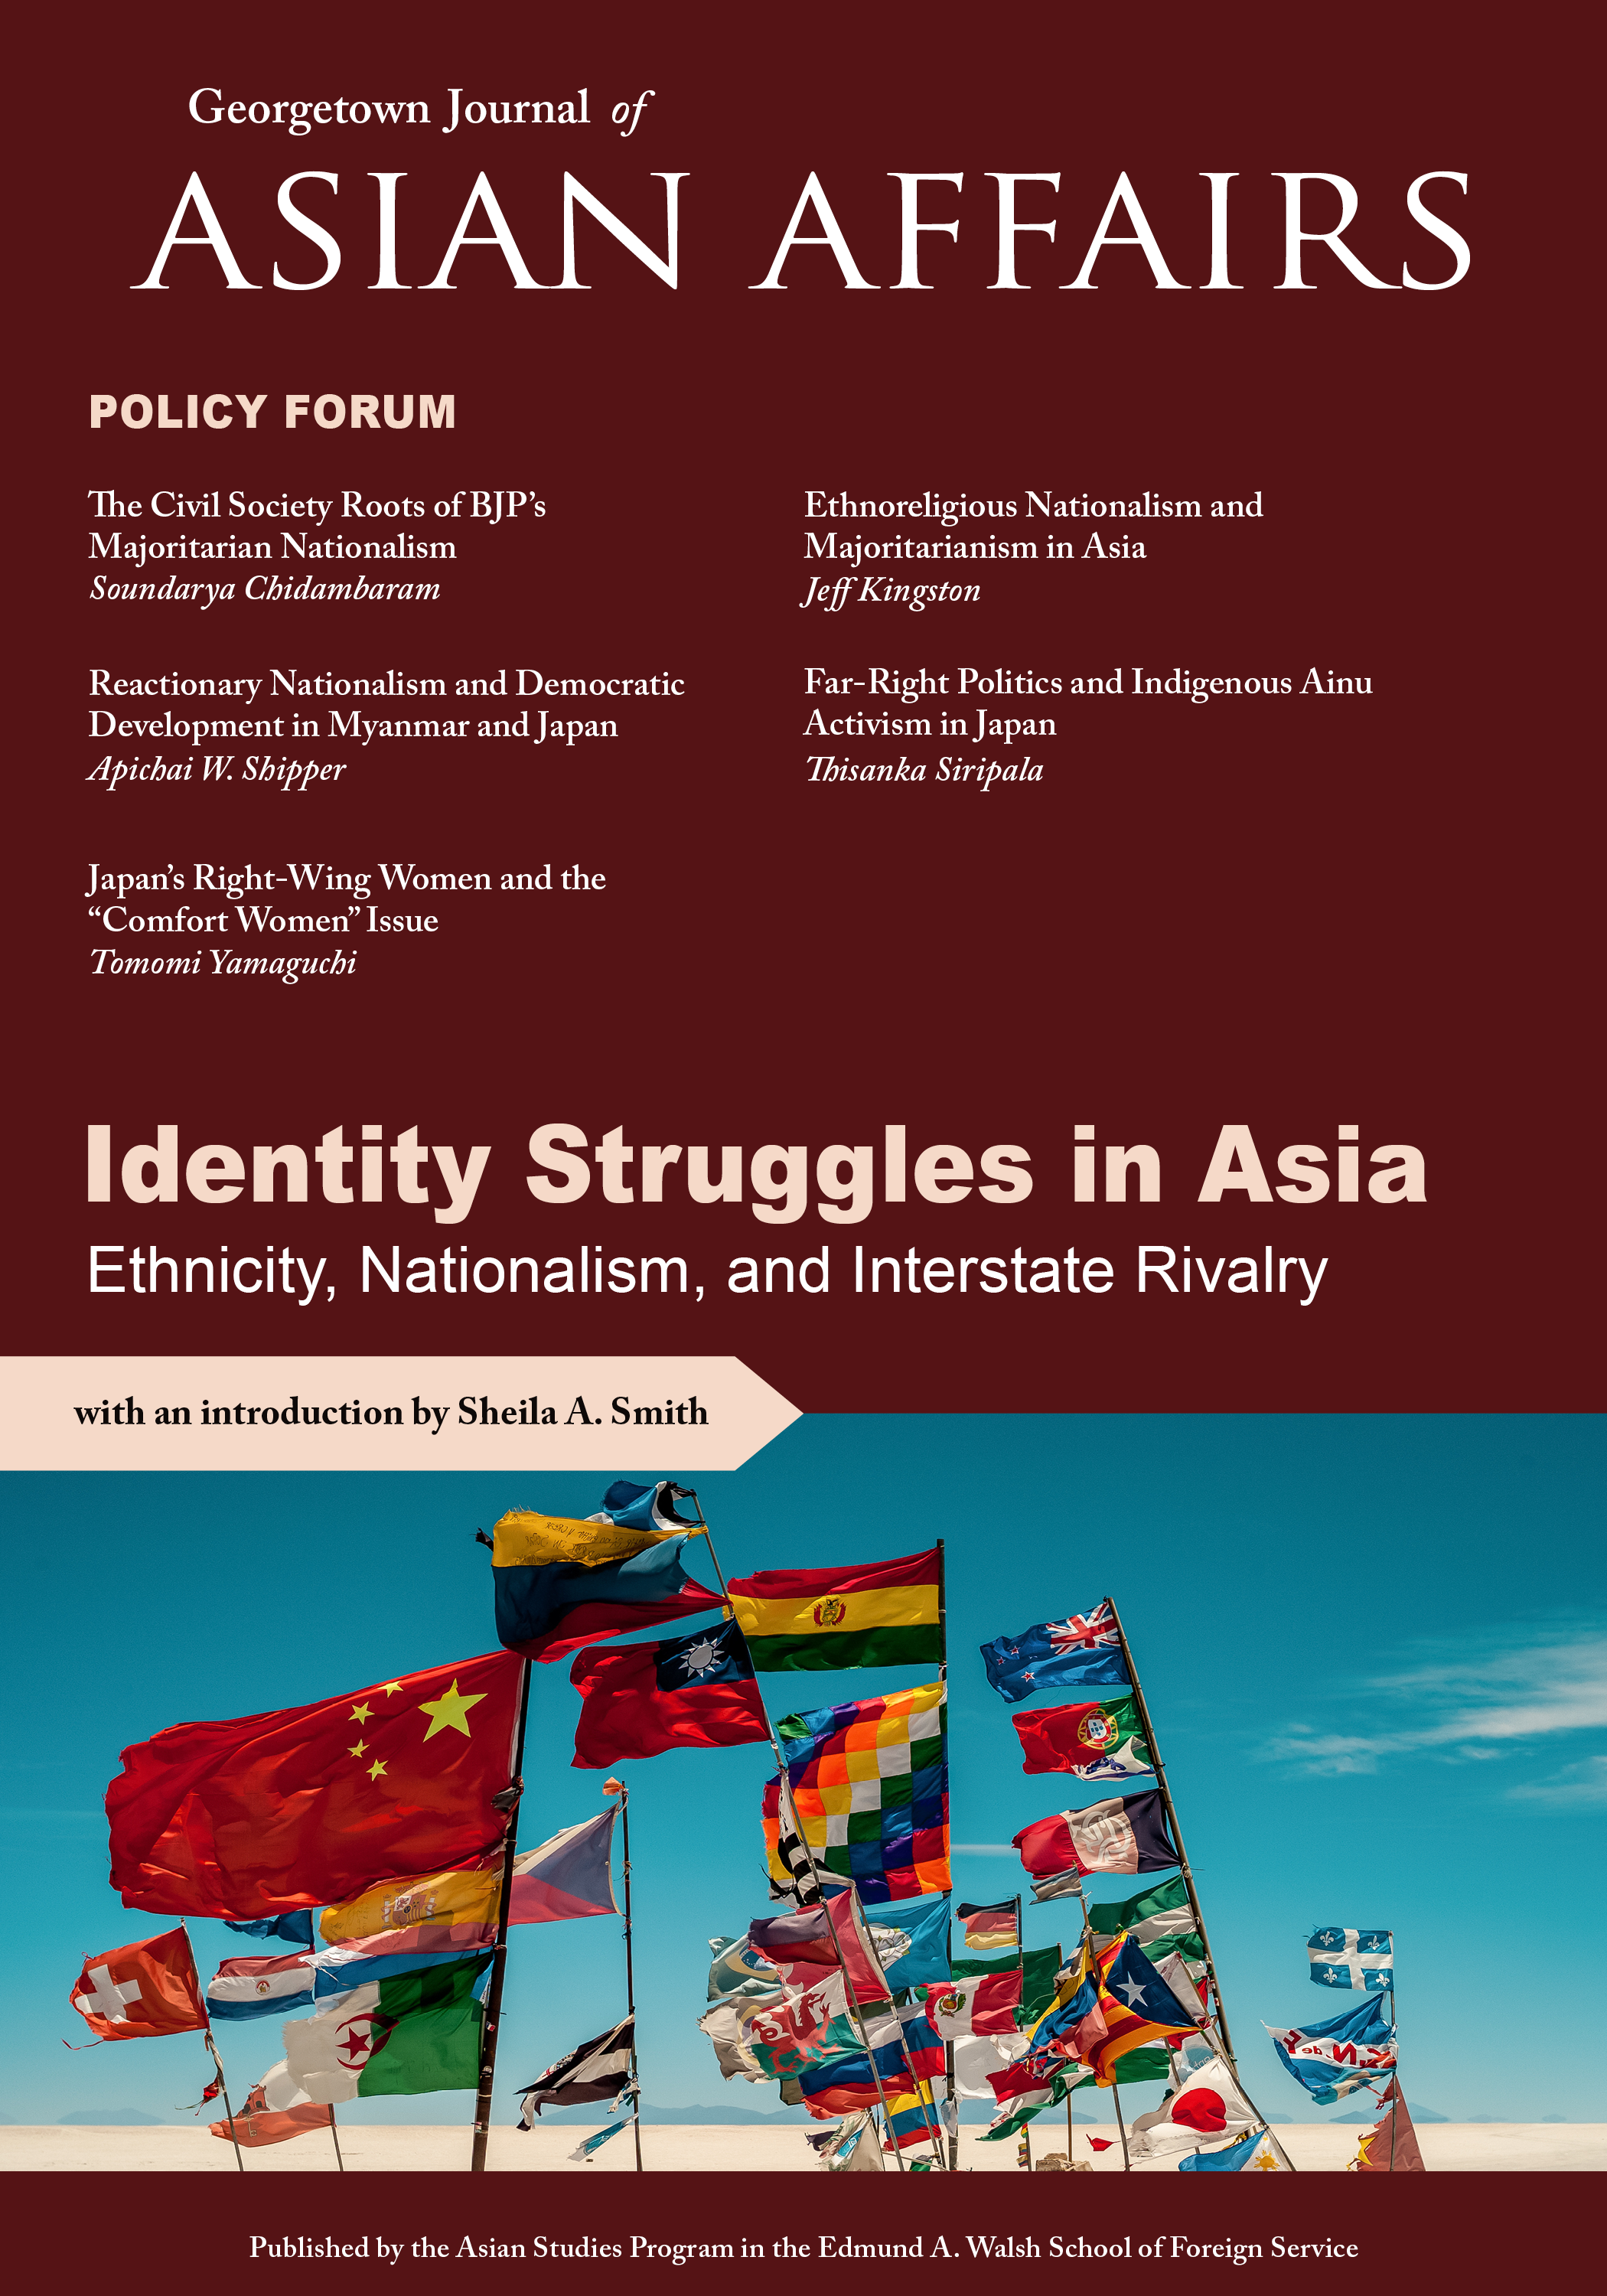 Georgetown Journal of Asian Affairs Volume 6 cover image